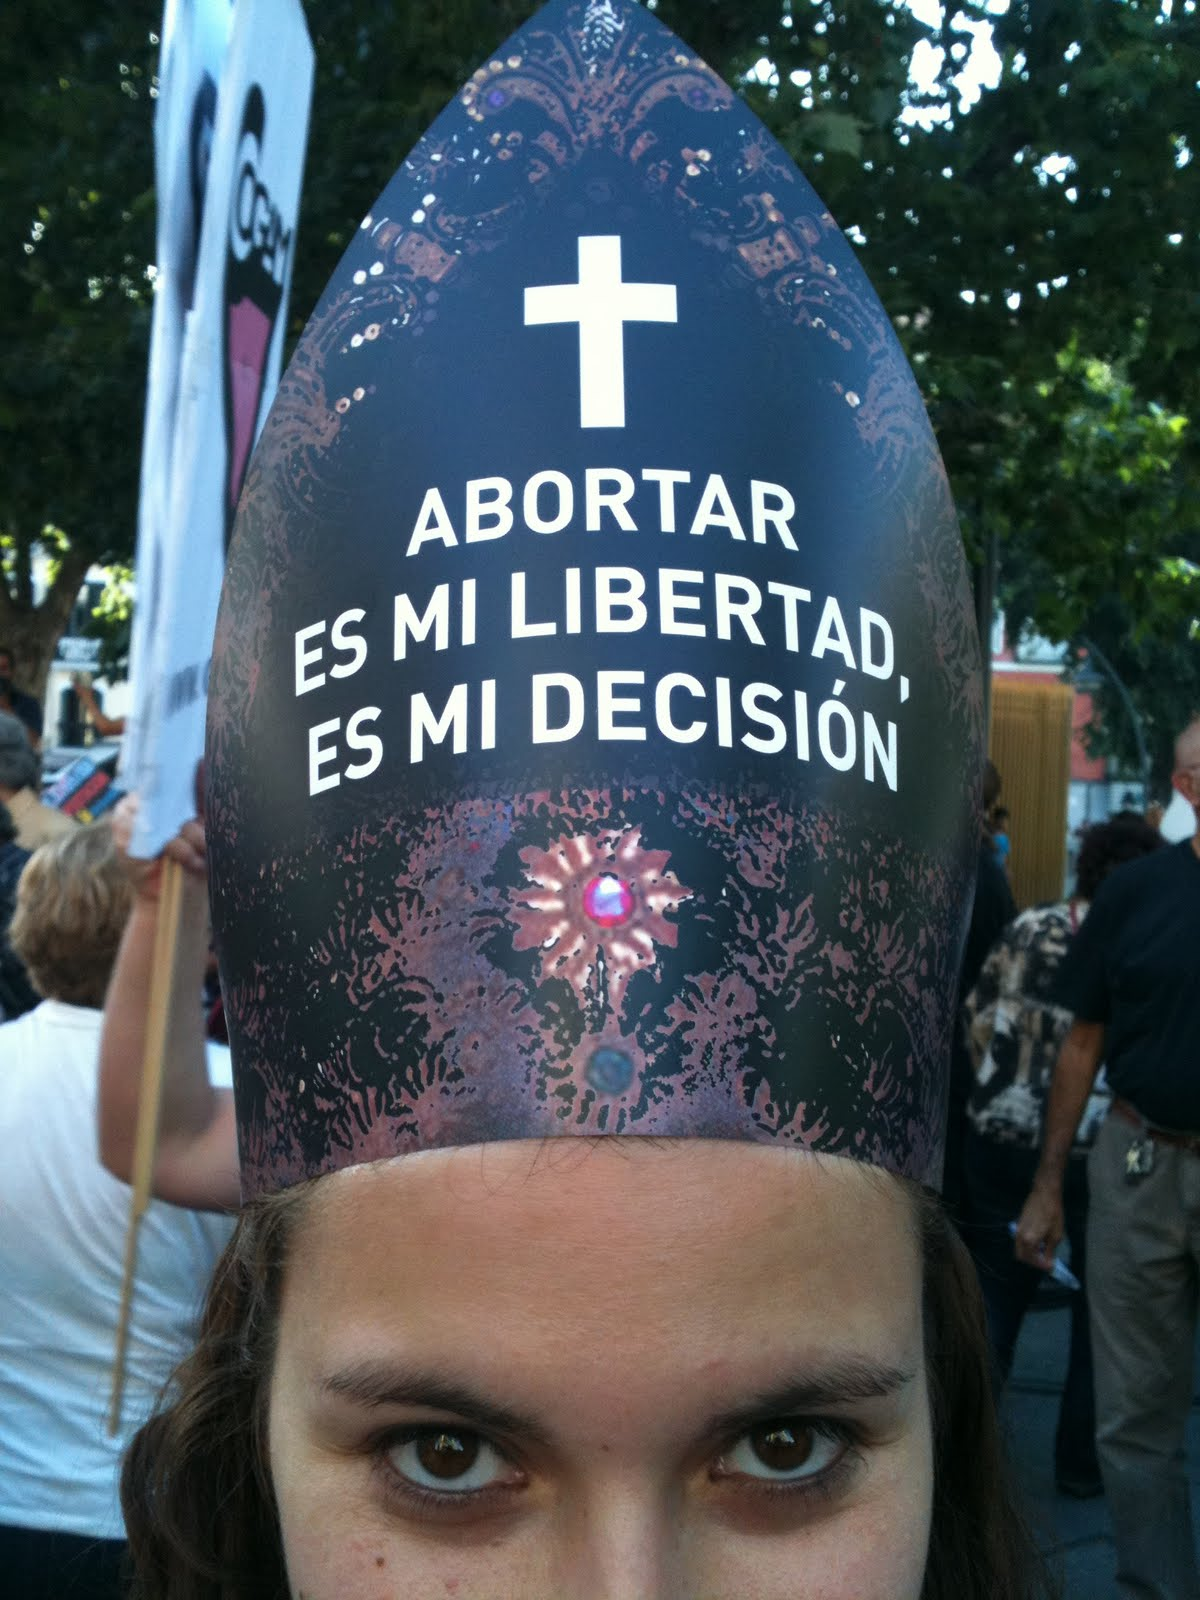 Abortion Debate Intensifies in Chile After 11-Year-Old Rape Victim